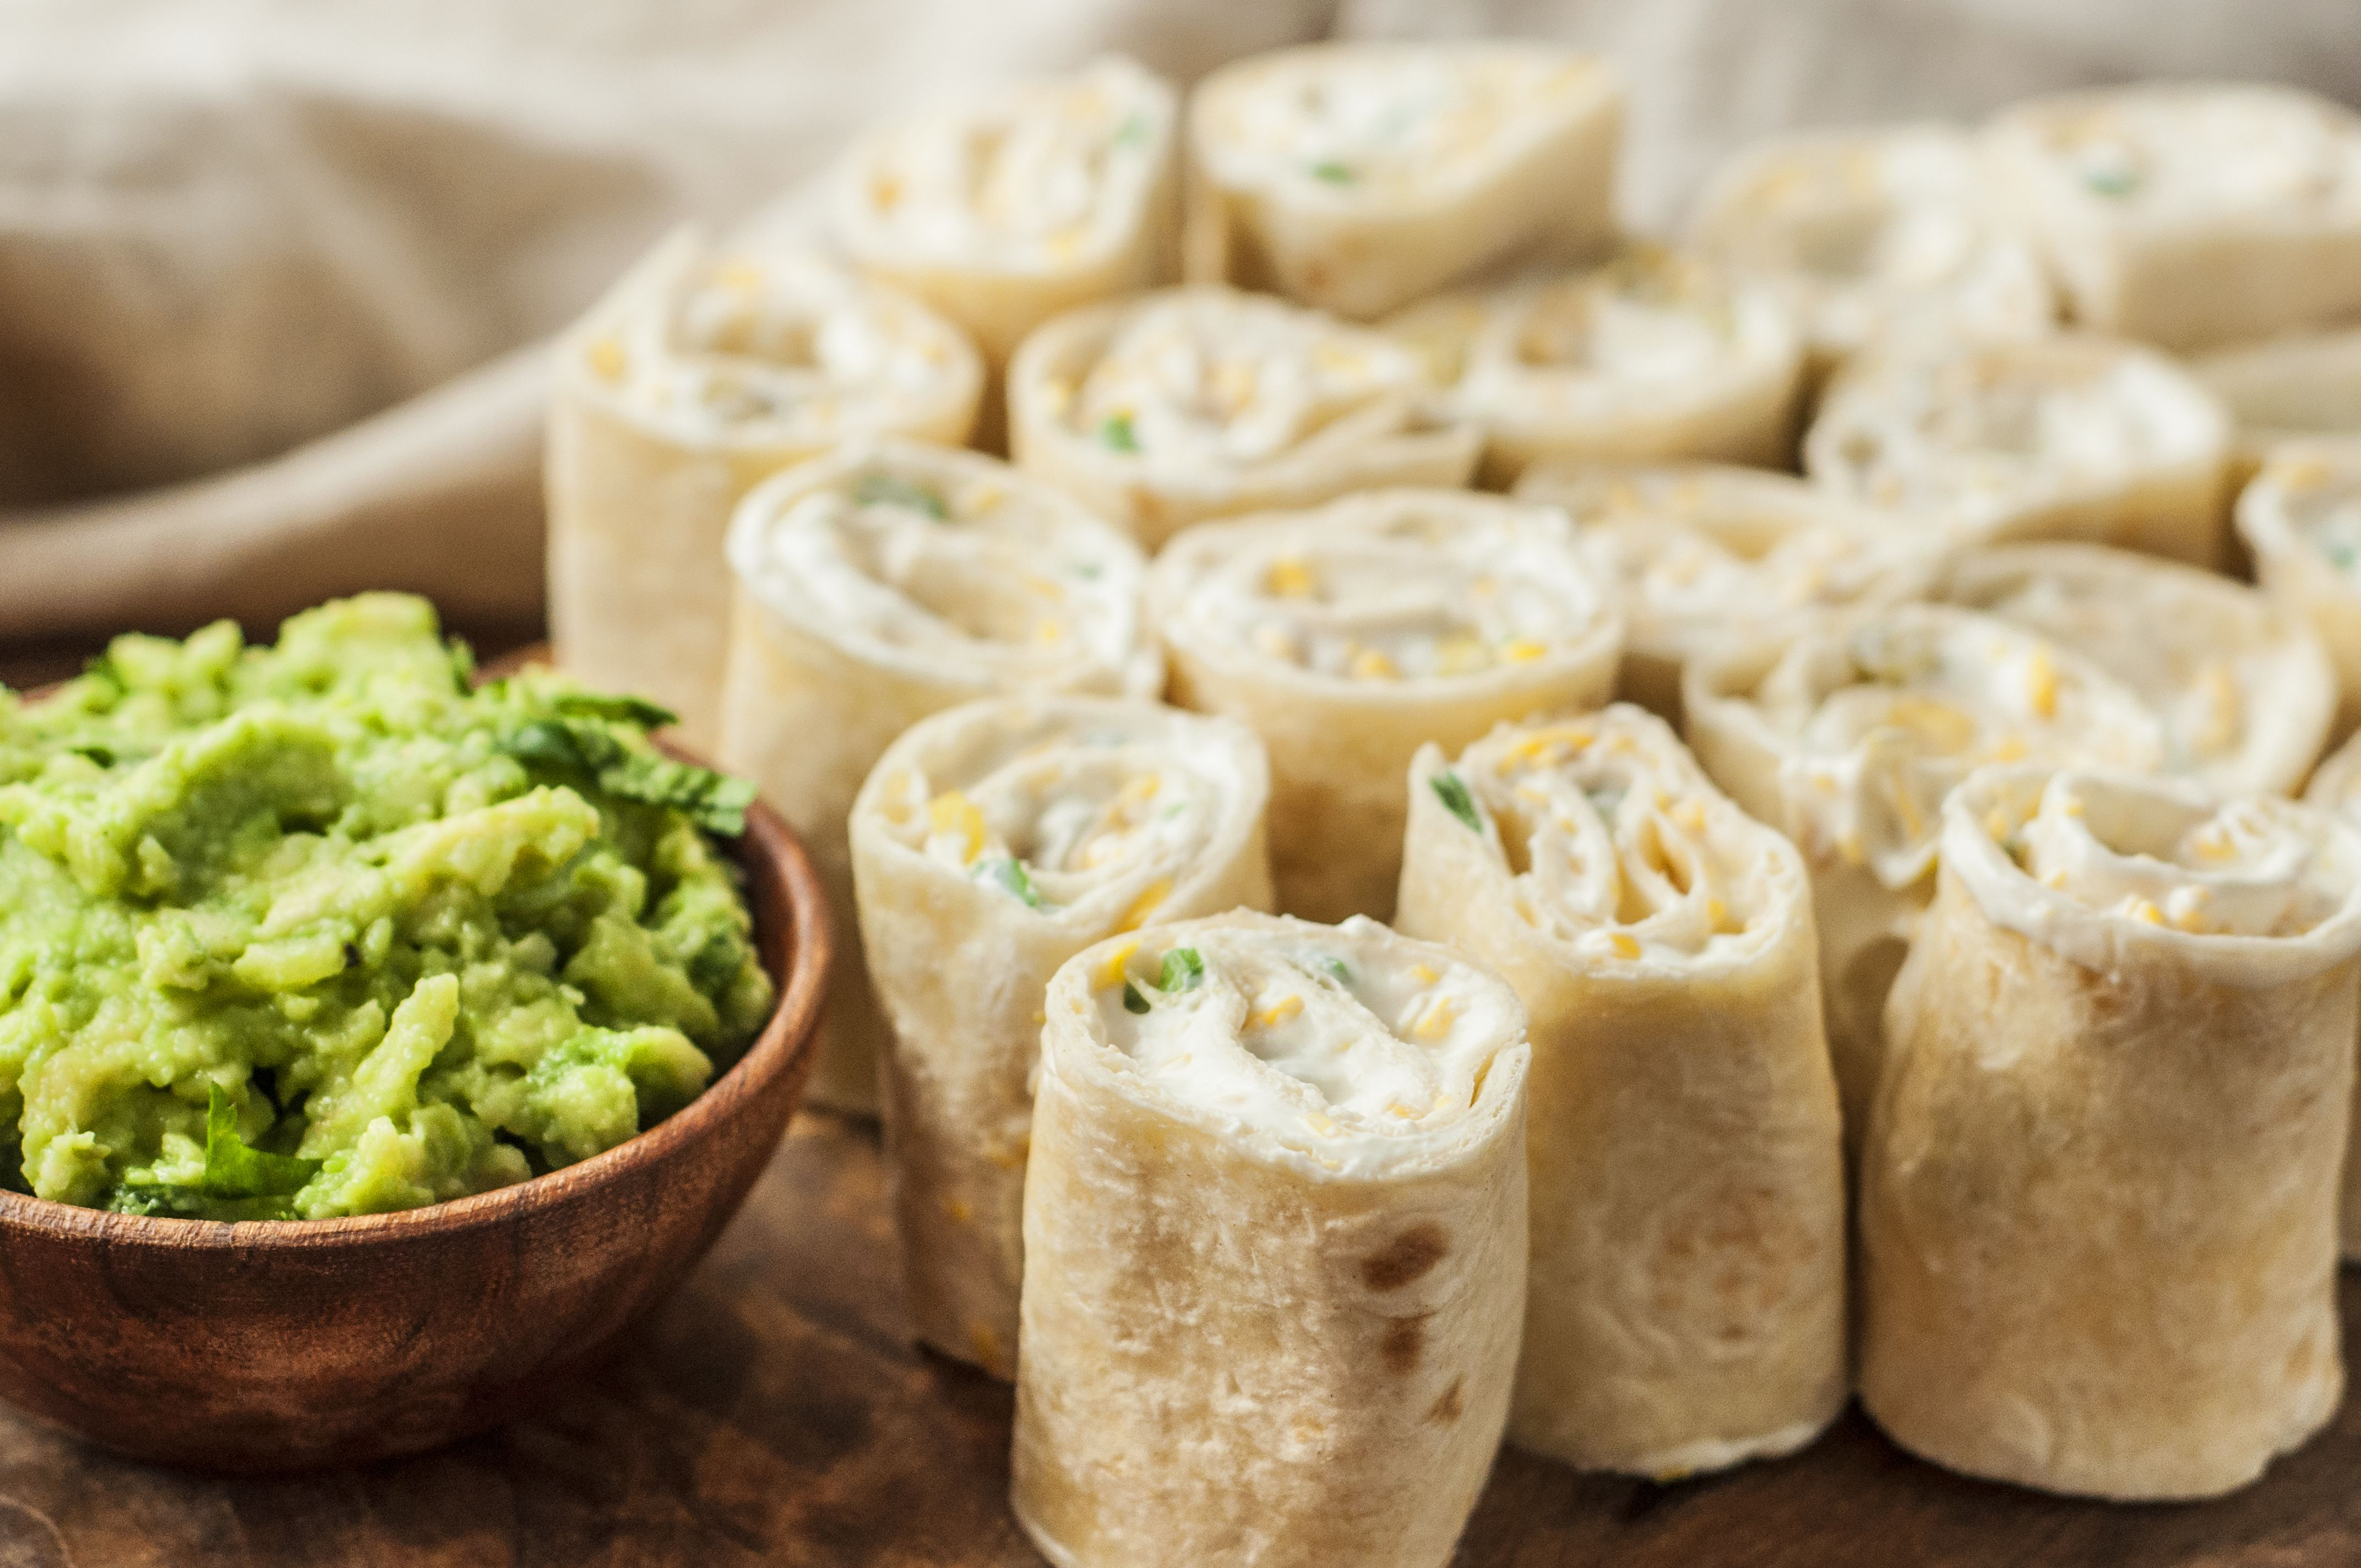 Tortillas sliced into pinwheels and served with guacamole